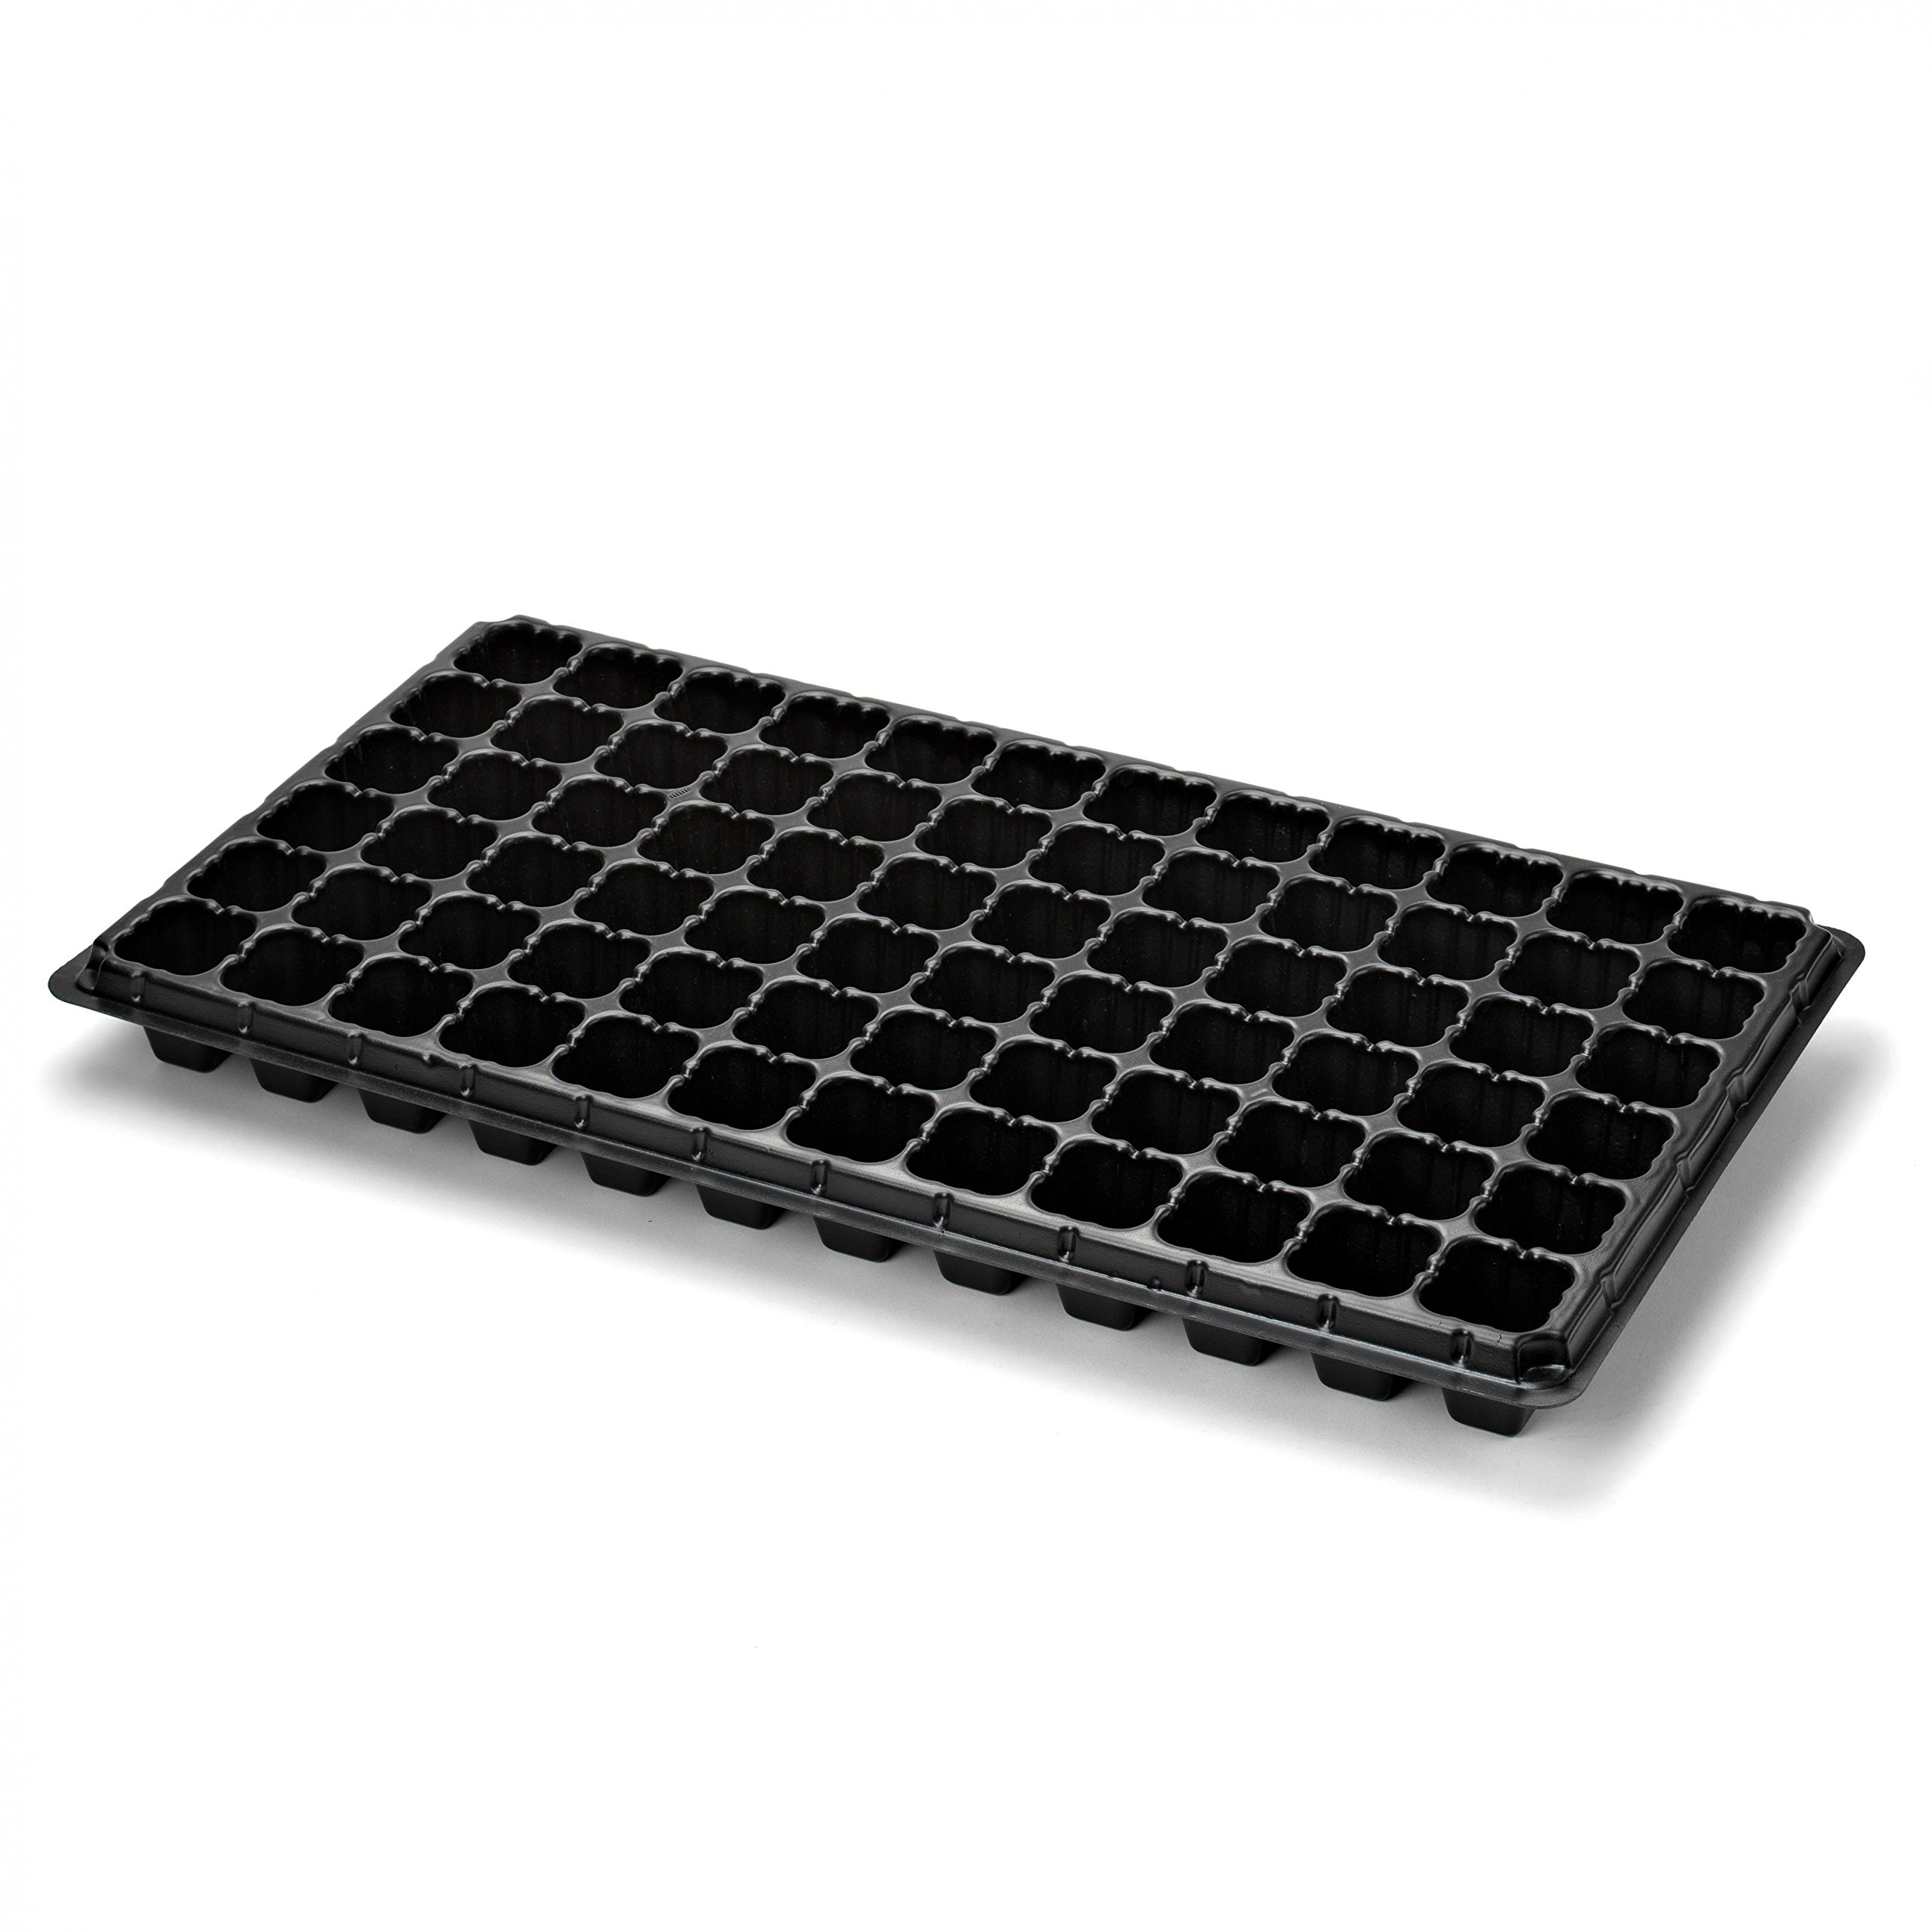 72 Cell Seedling Starter Trays 2'' High Extra Strength 5 Pack - Seed Planting Insert Plug Tray Plant Growing Plugs by Bootstrap Farmer